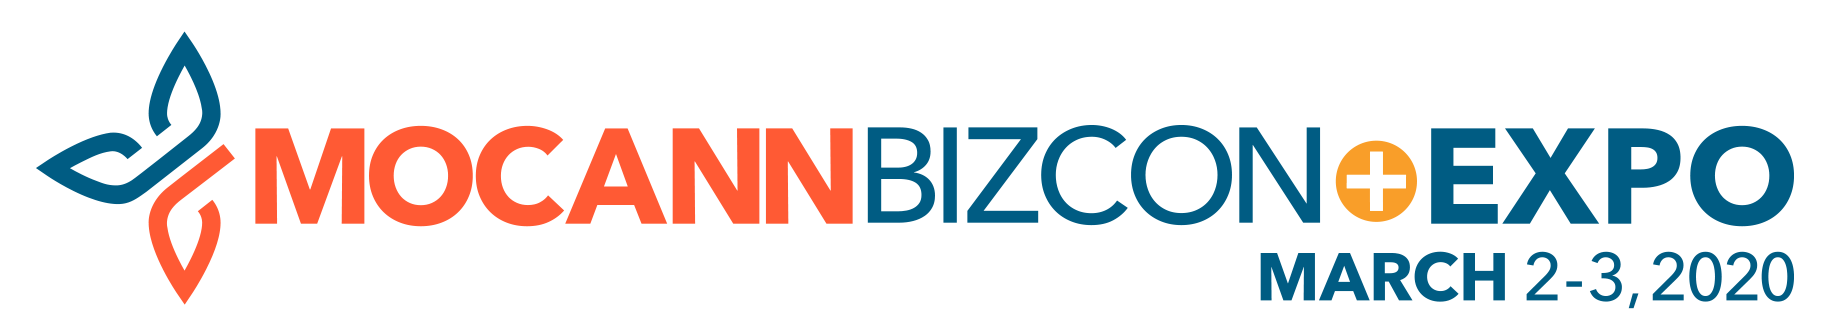 MoCannBizCon+Expo_ Logo with date Teal.png